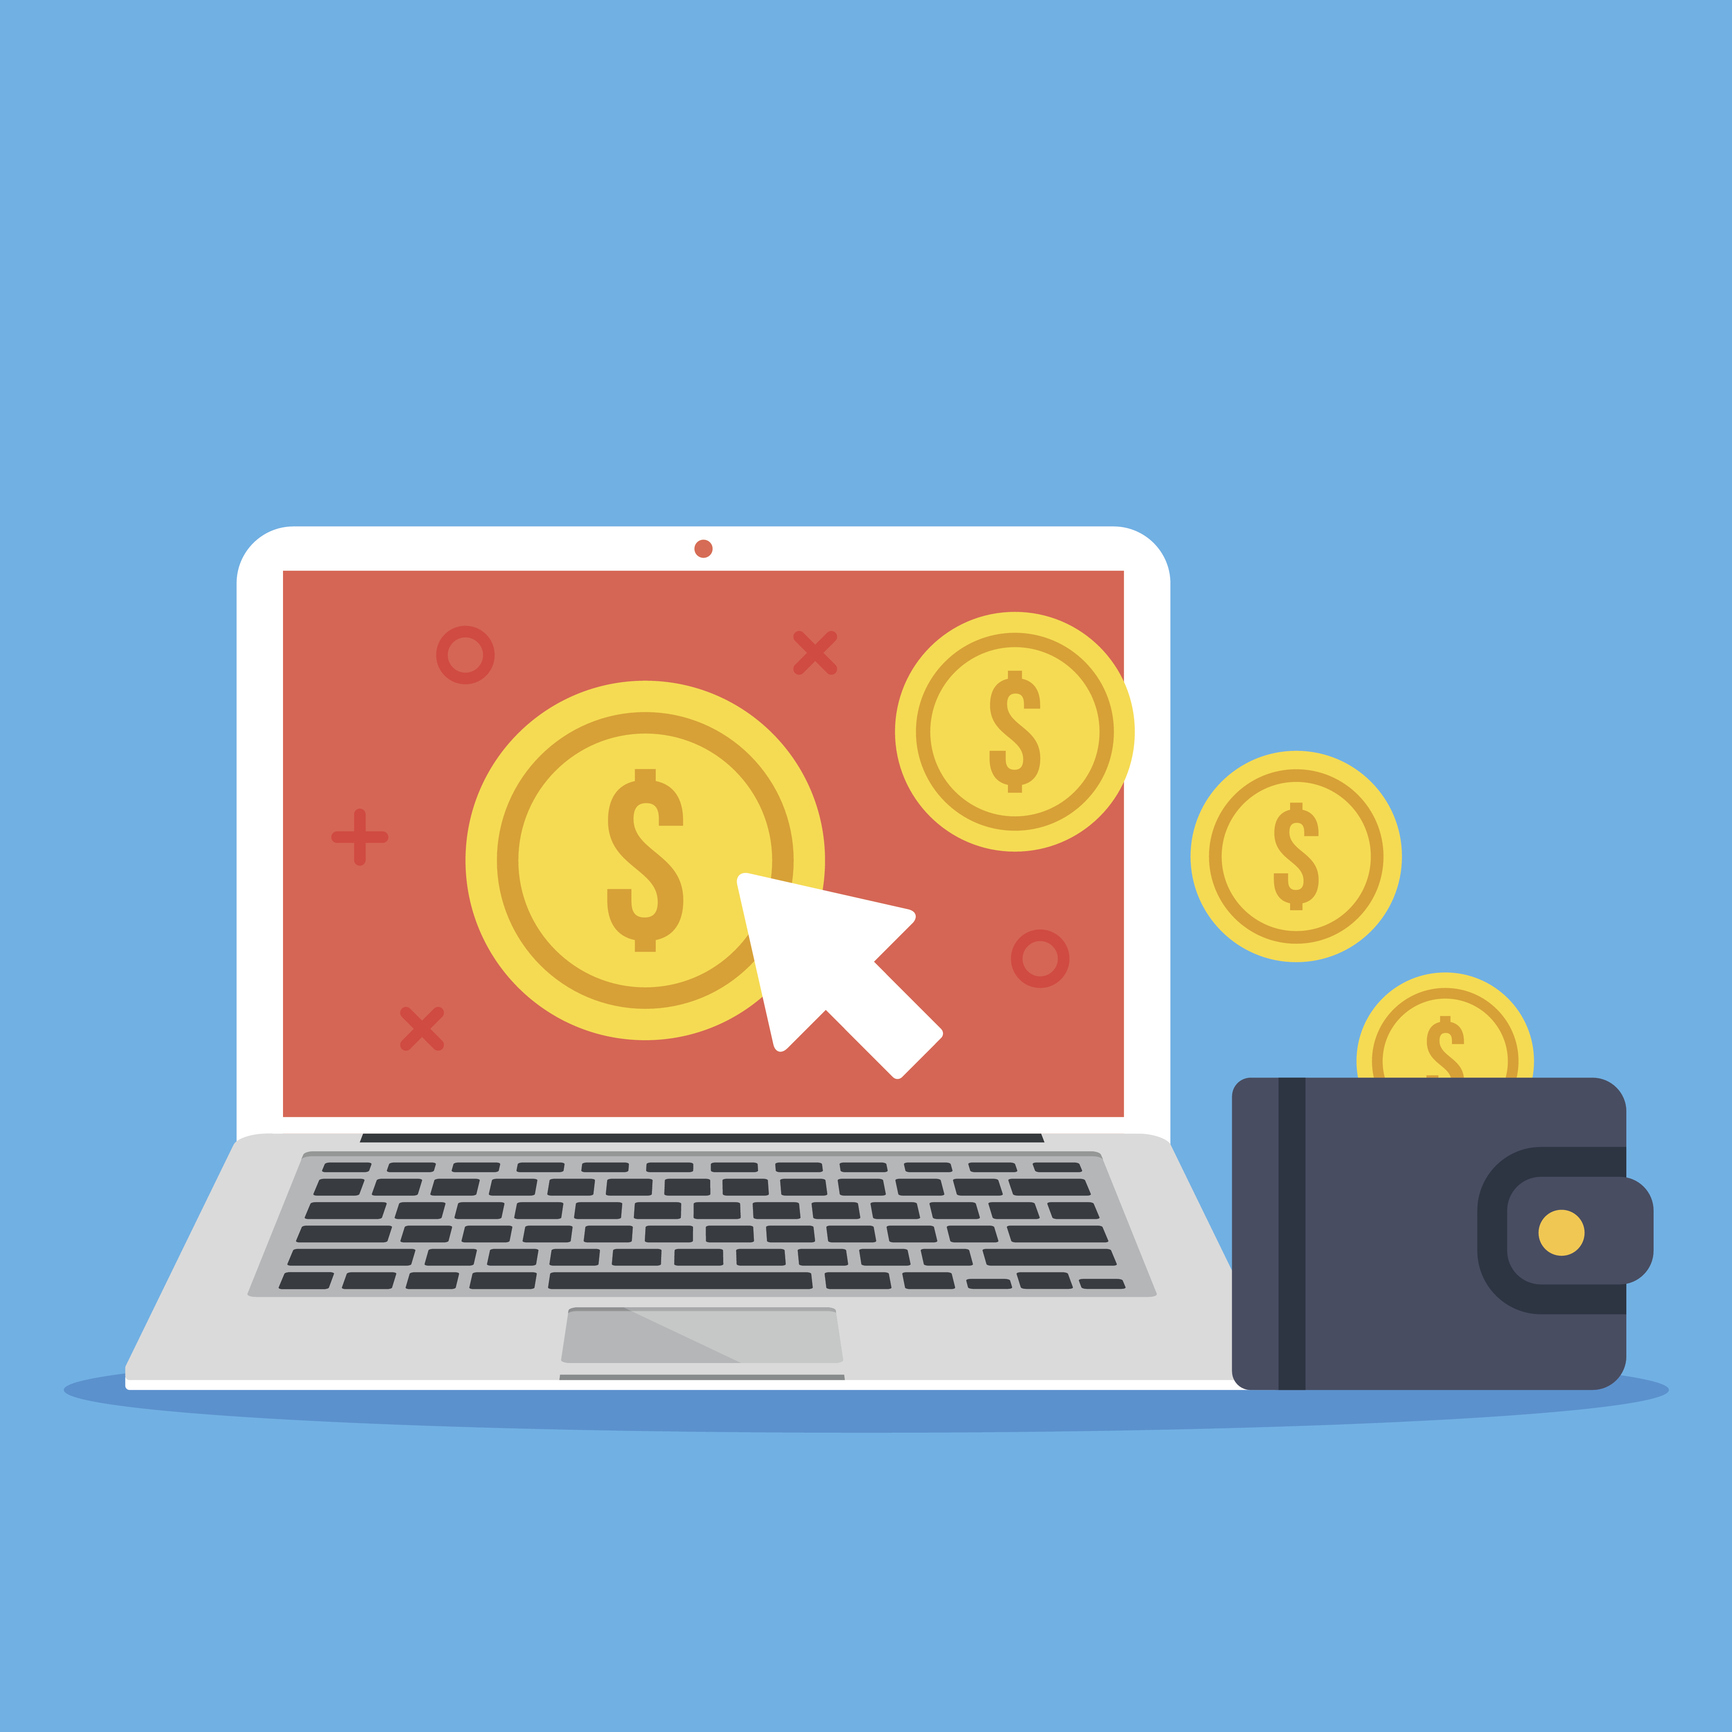 Pay per click, make money online. Flat design vector illustration